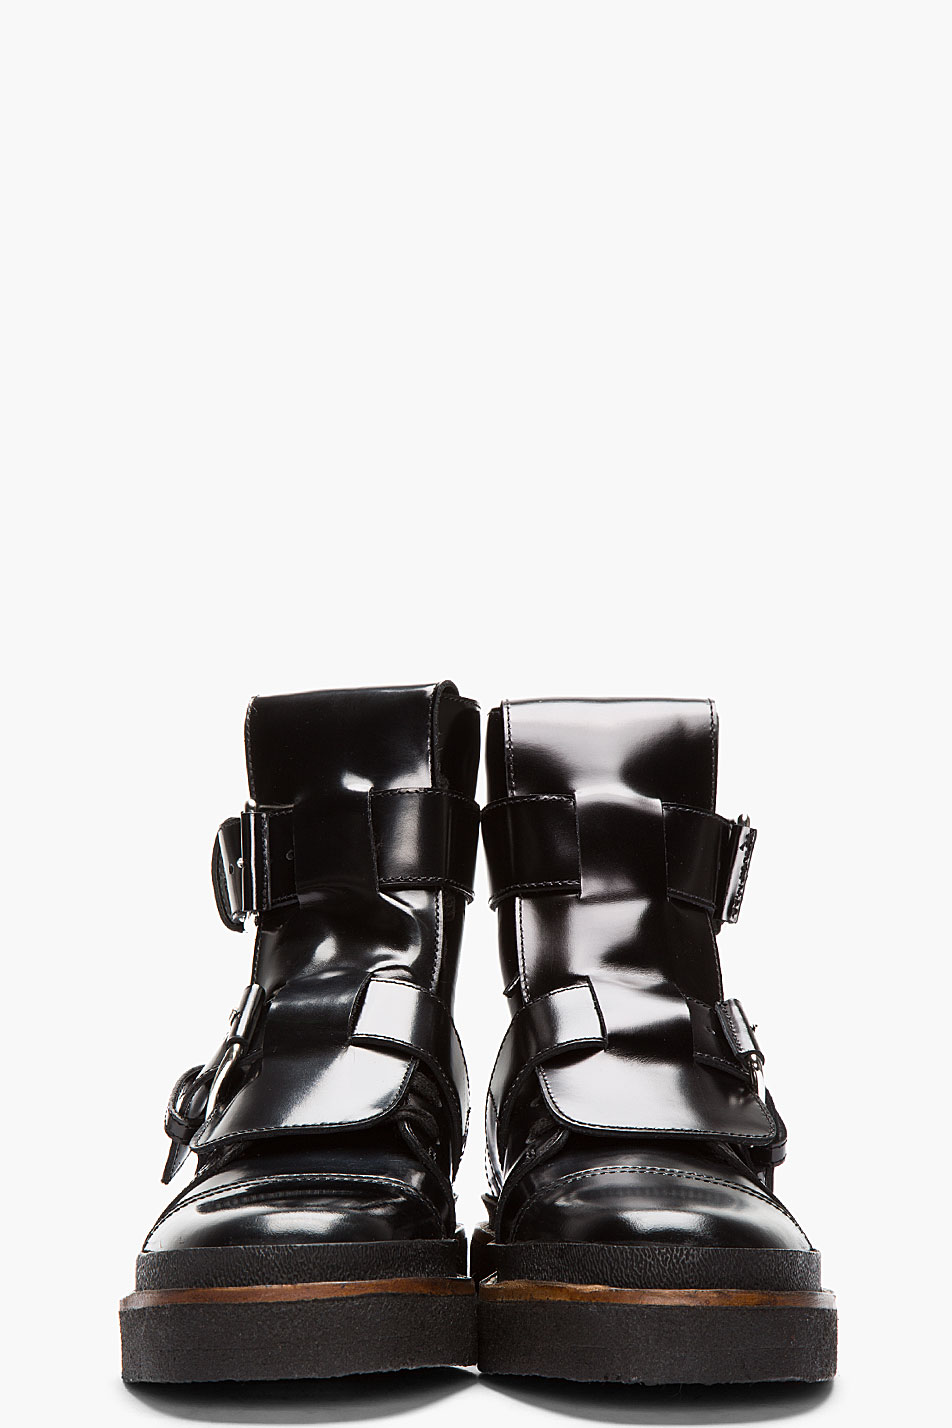 Lyst Marni Black Leather Buckle Boots In Black For Men